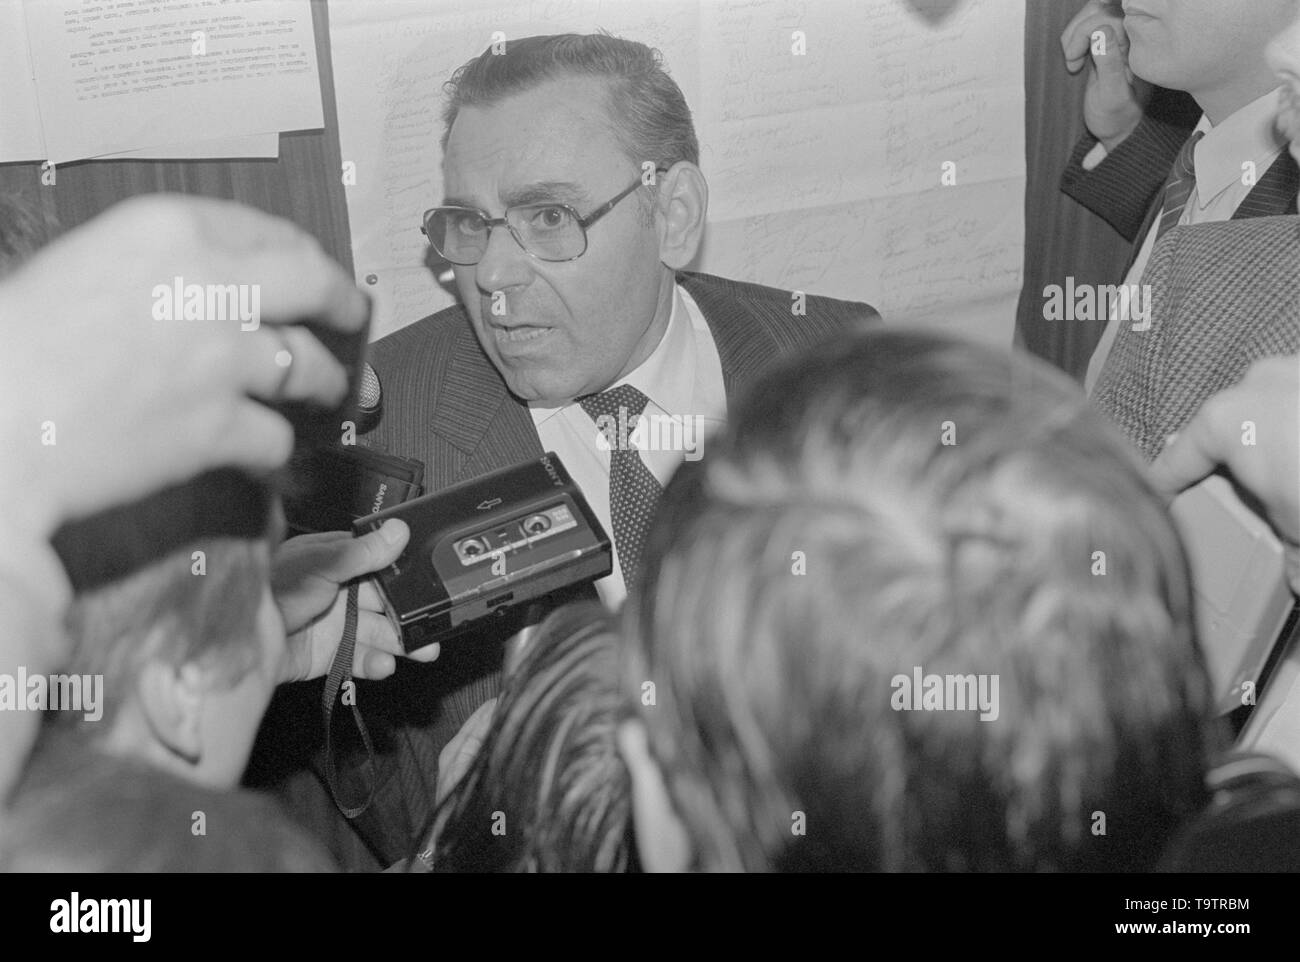 Moscow, Russia - July 07, 1991: Leader of the Communst party of russian RSFSR Ivan Kuzmich Polozkov talks to corespondents at 3d extraordinary Congress of people's deputies of russian RSFSR. - Stock Image